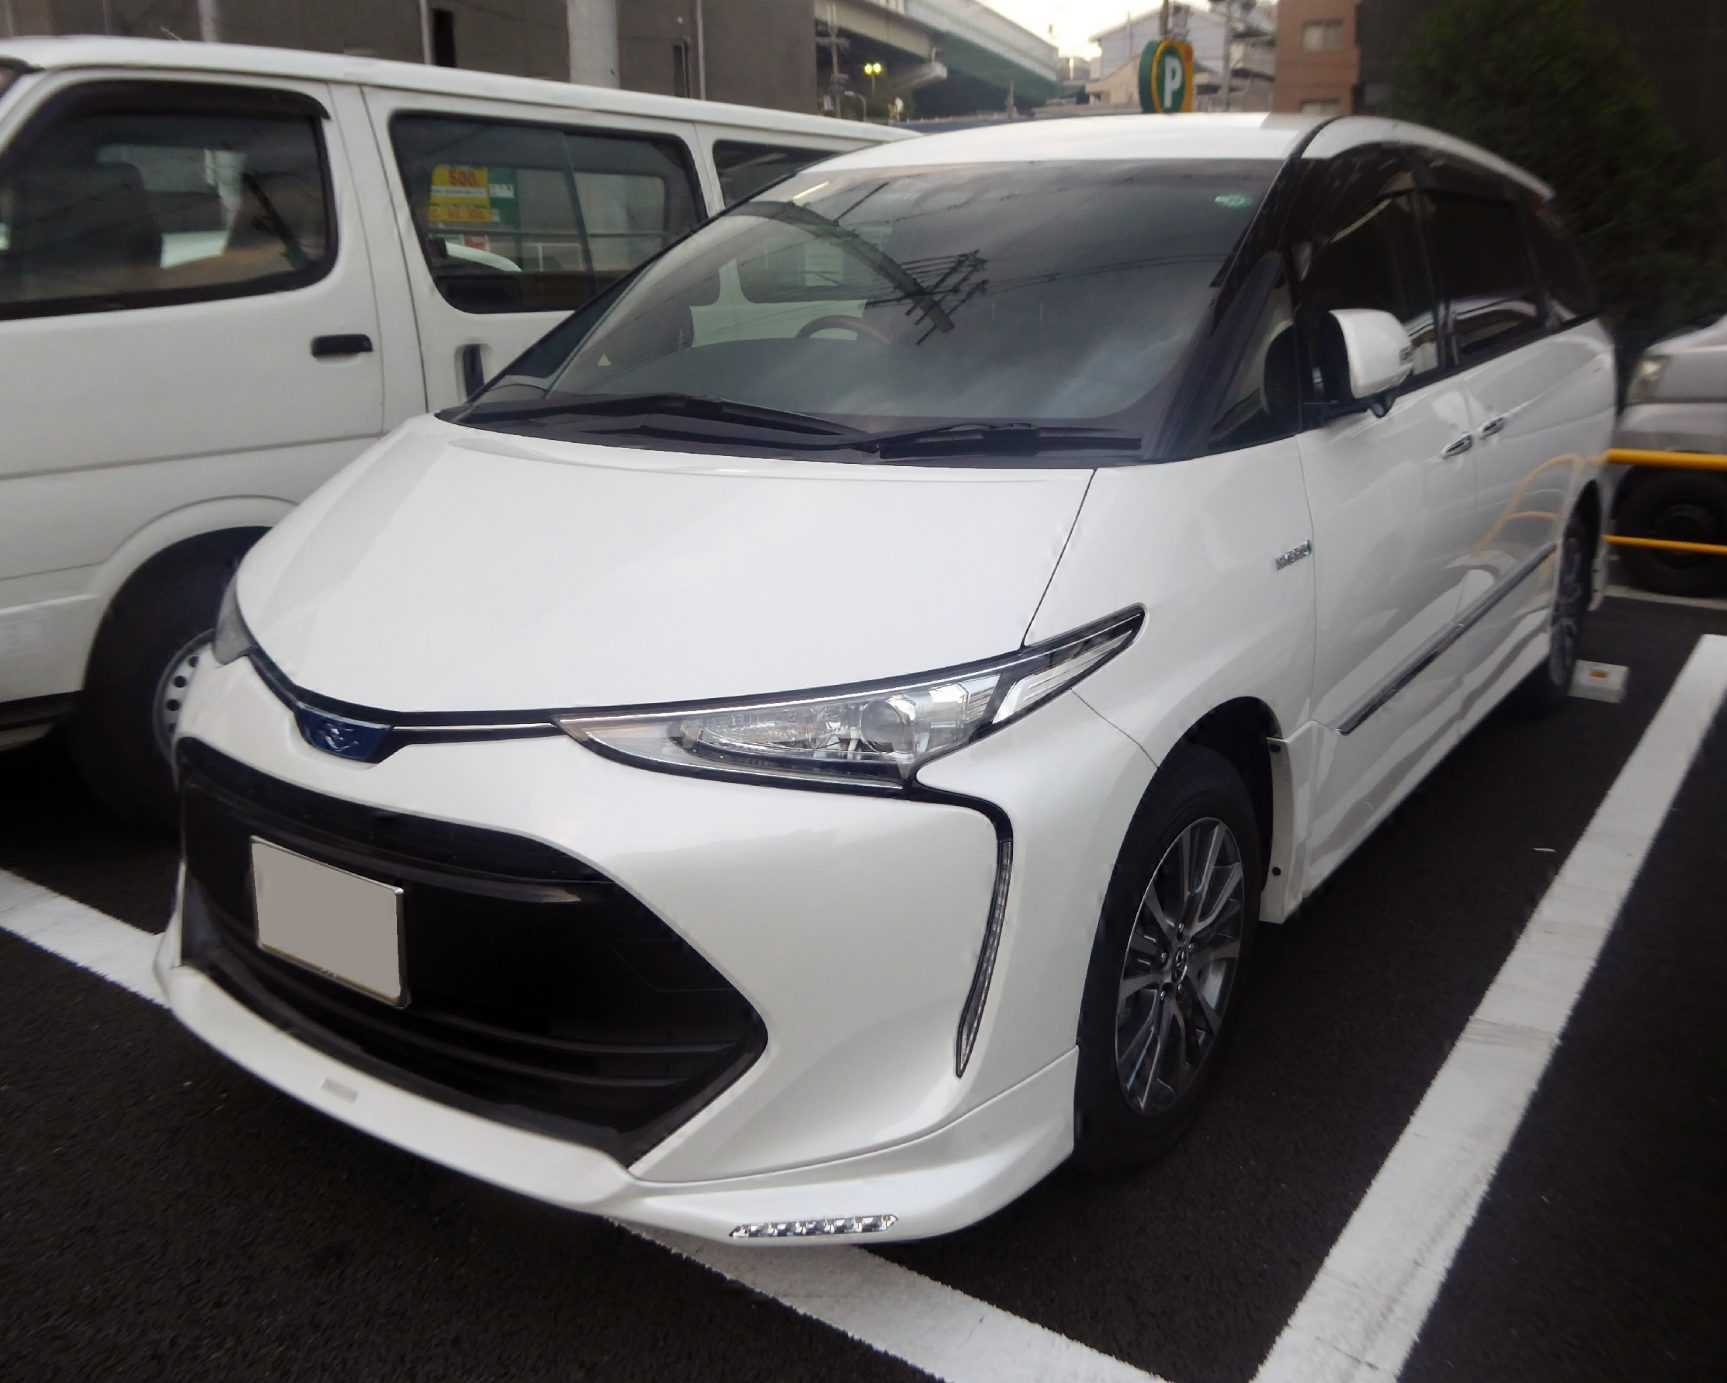 44 New Toyota Estima 2020 Exterior and Interior with Toyota Estima 2020